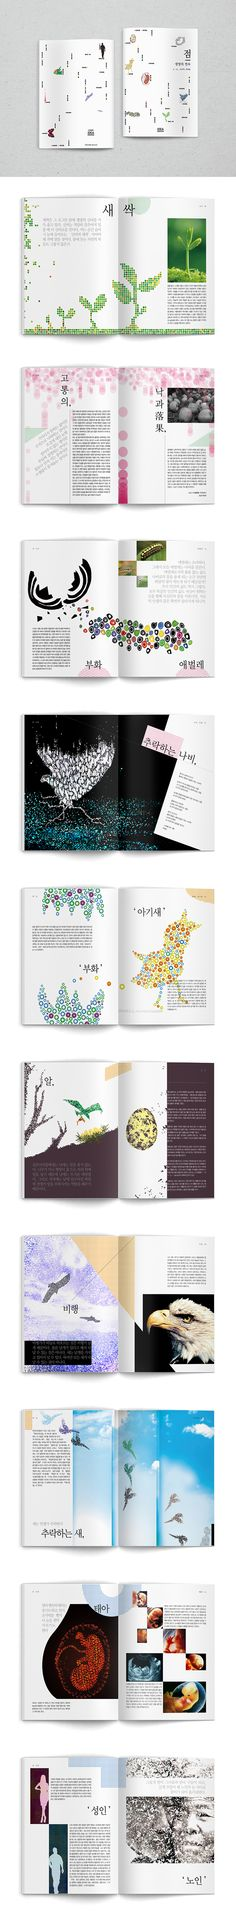 점-생명의 연속 Point - the continuity of life on Behance